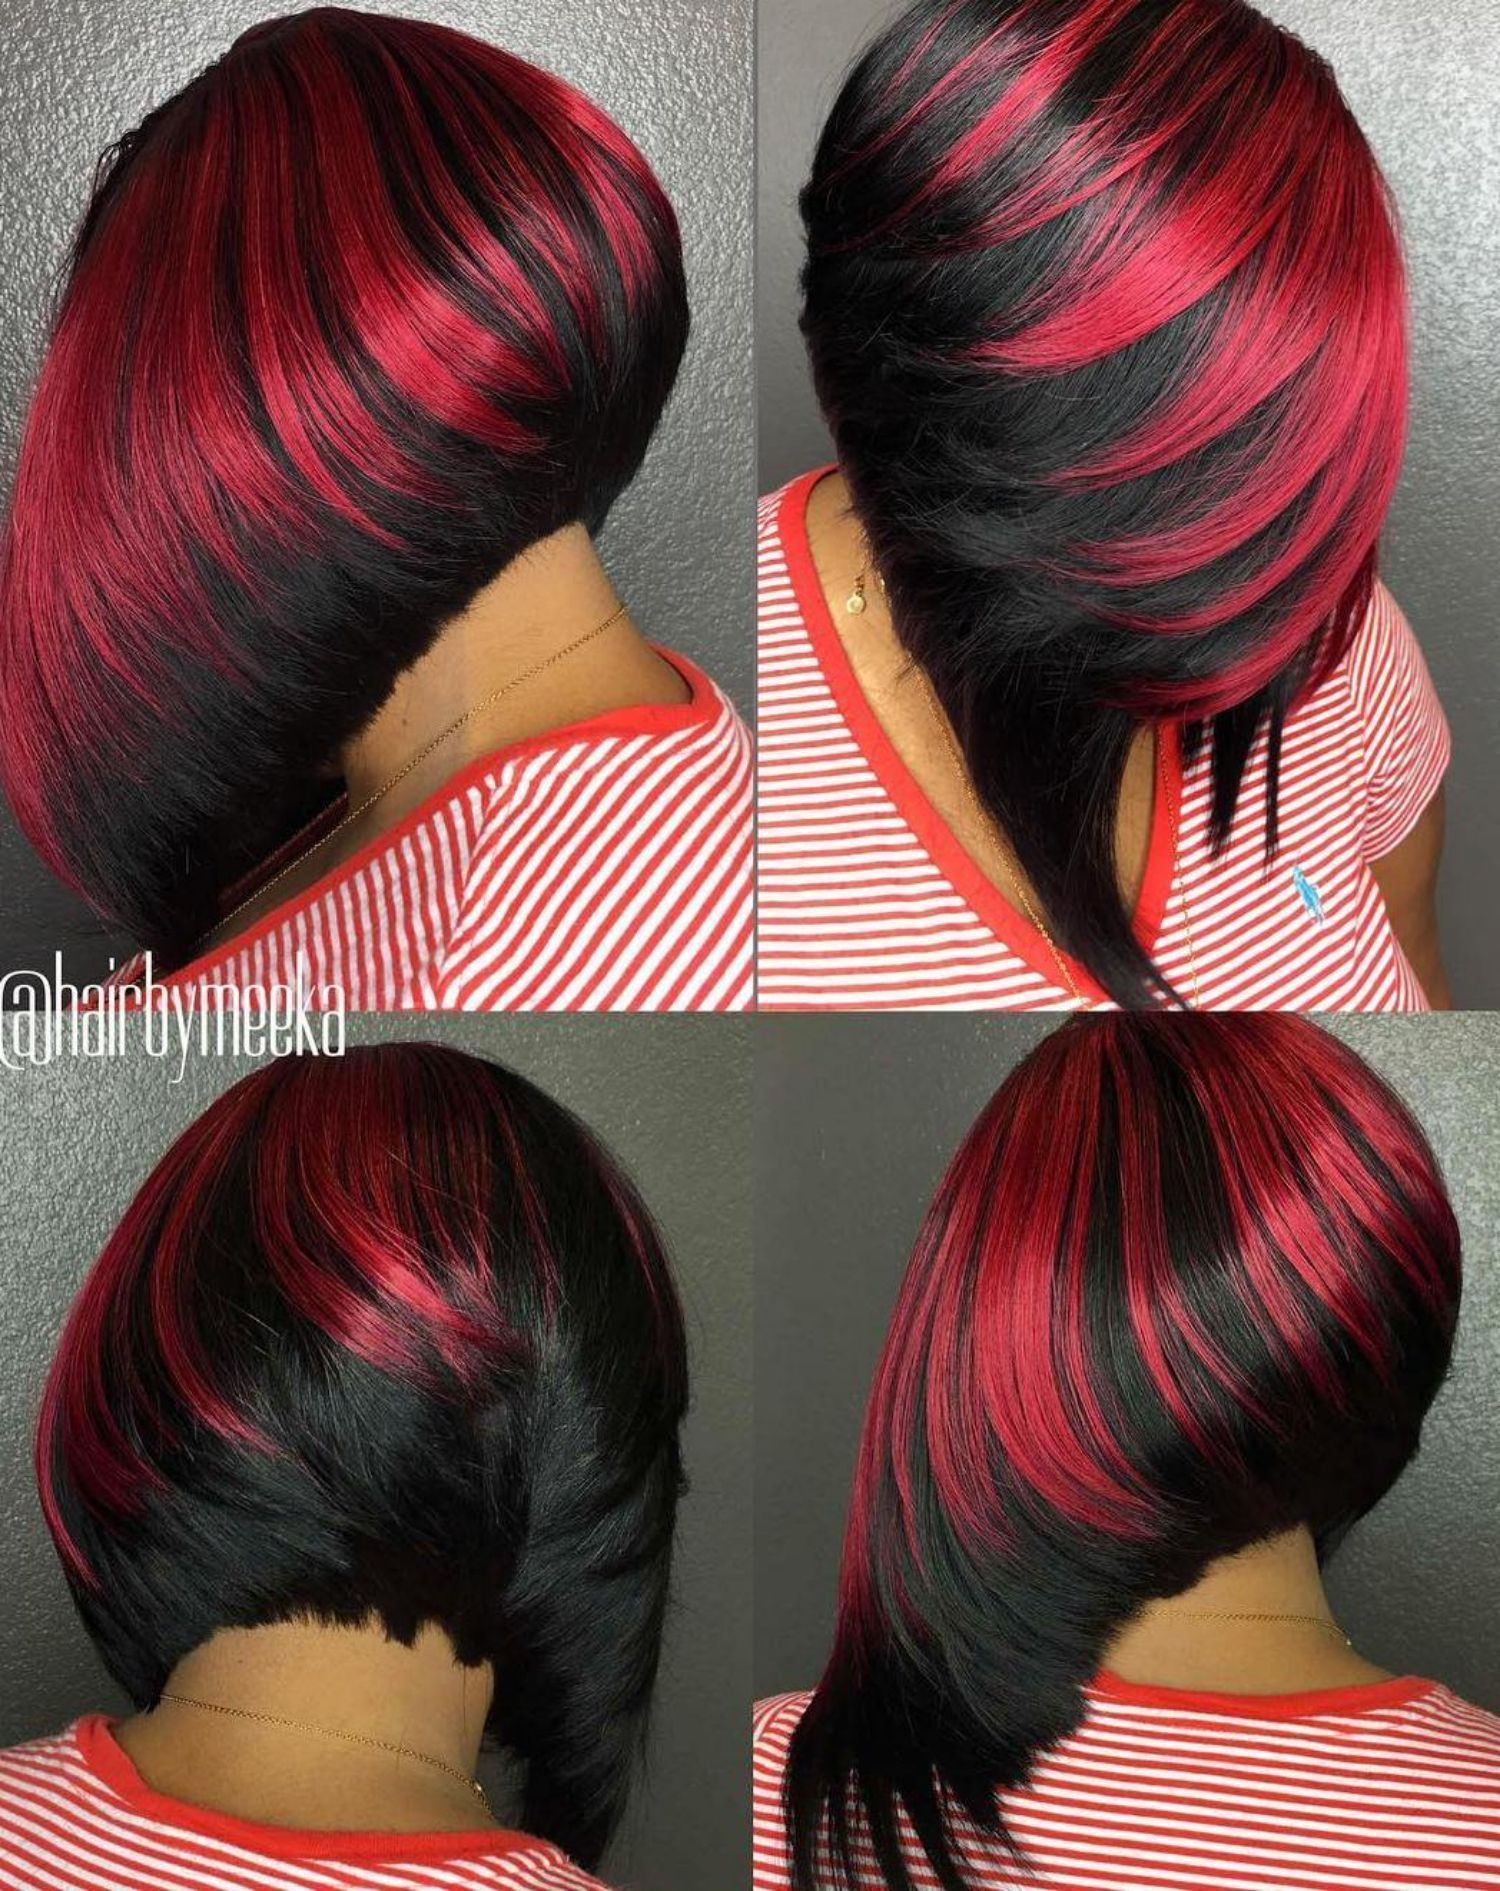 Black Bob With Feathered Scarlet Highlights Hair Styles Thick Hair Styles Short Hair Styles